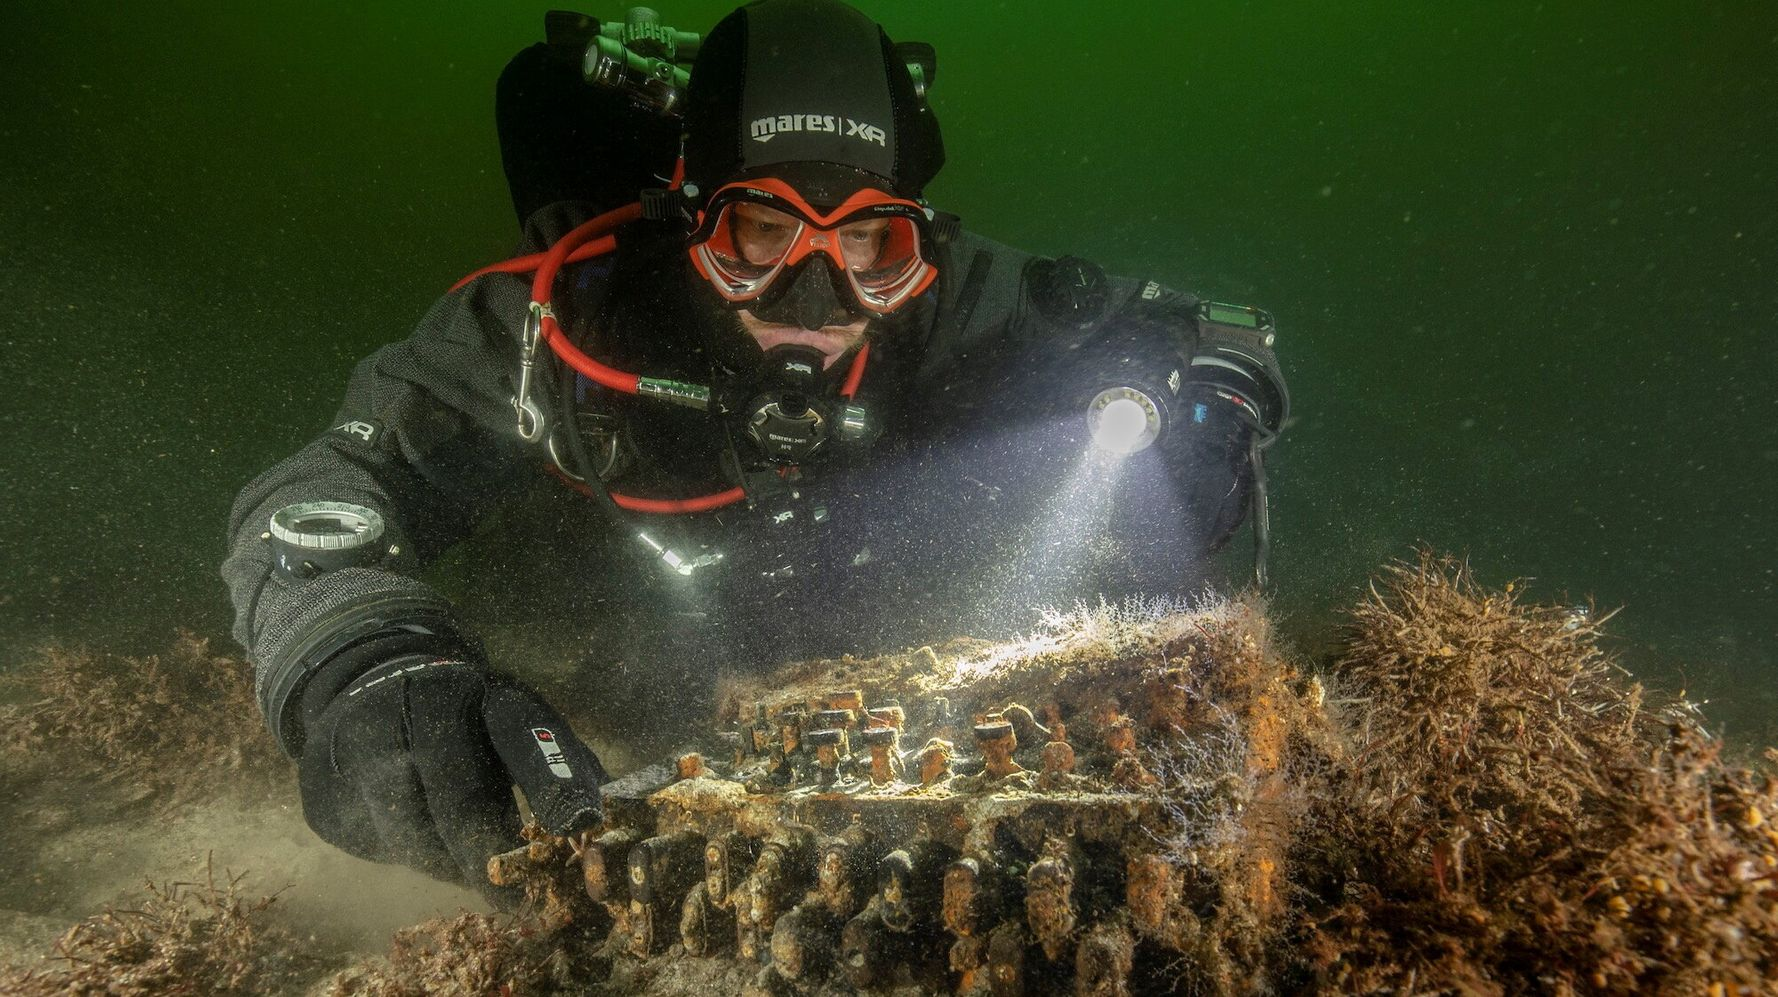 Divers Discover Rare Nazi World War II Enigma Machine